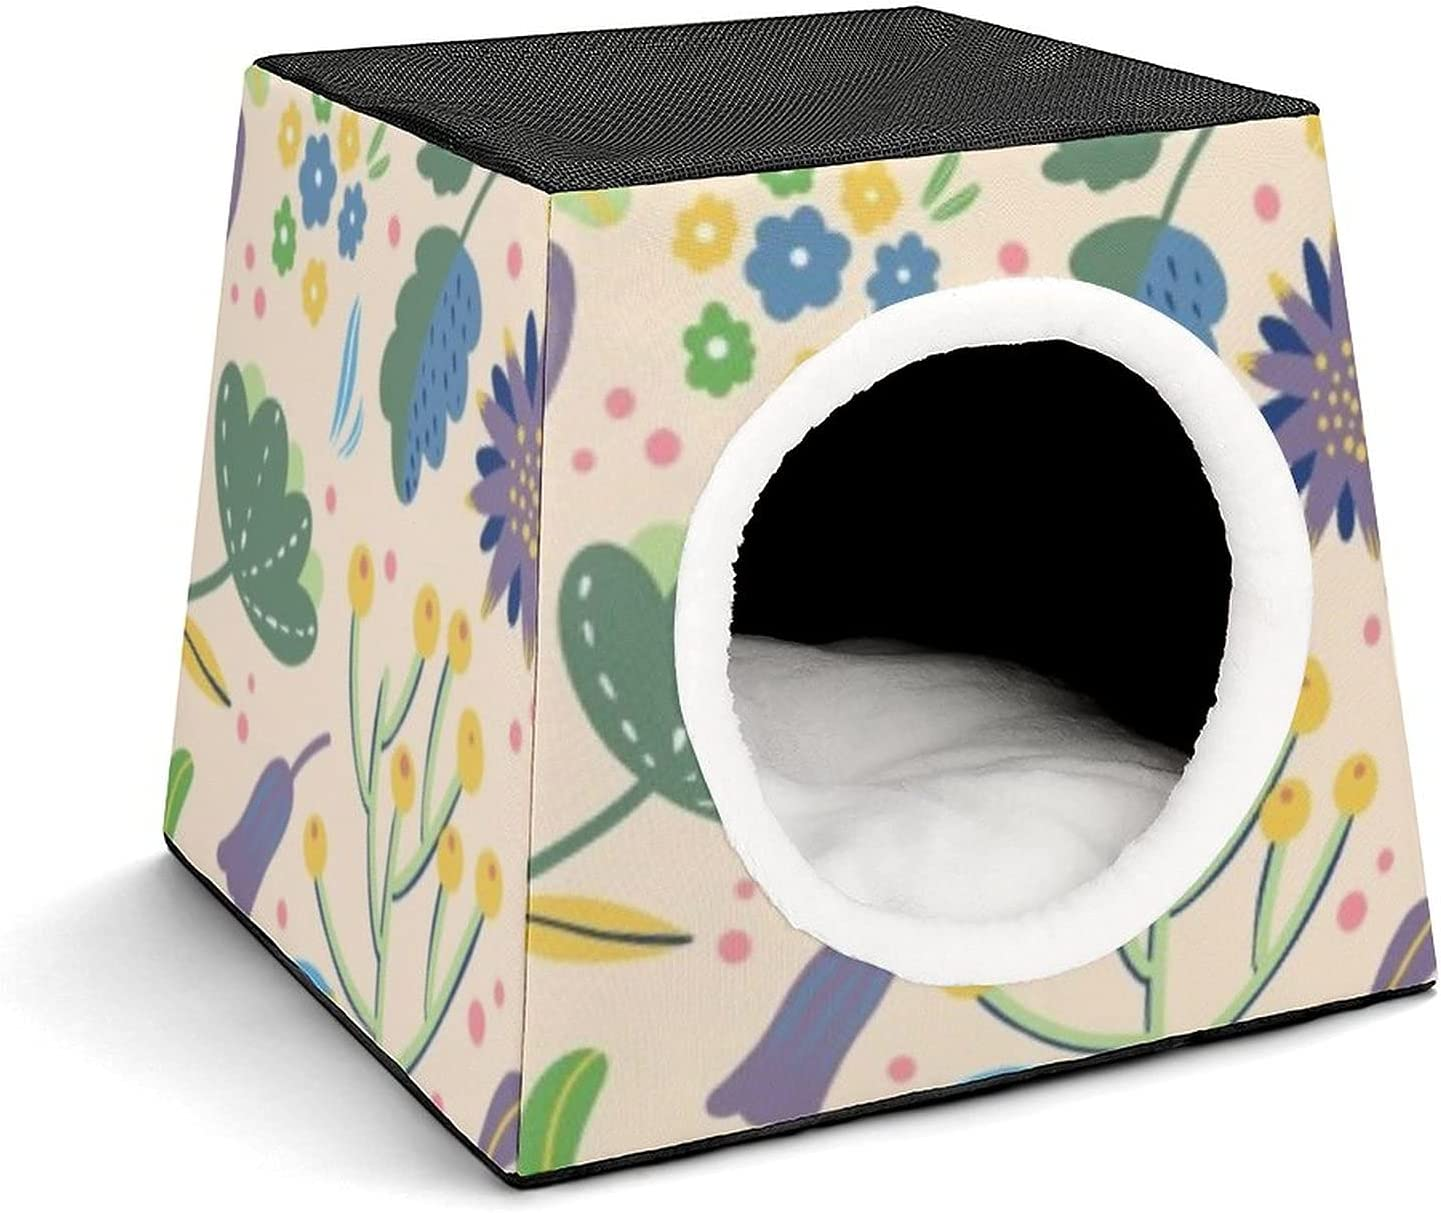 Cozy 2021 spring and summer new Pet Bed Warm Nest Capsule Sleeping Hous Max 42% OFF Shape Puppy